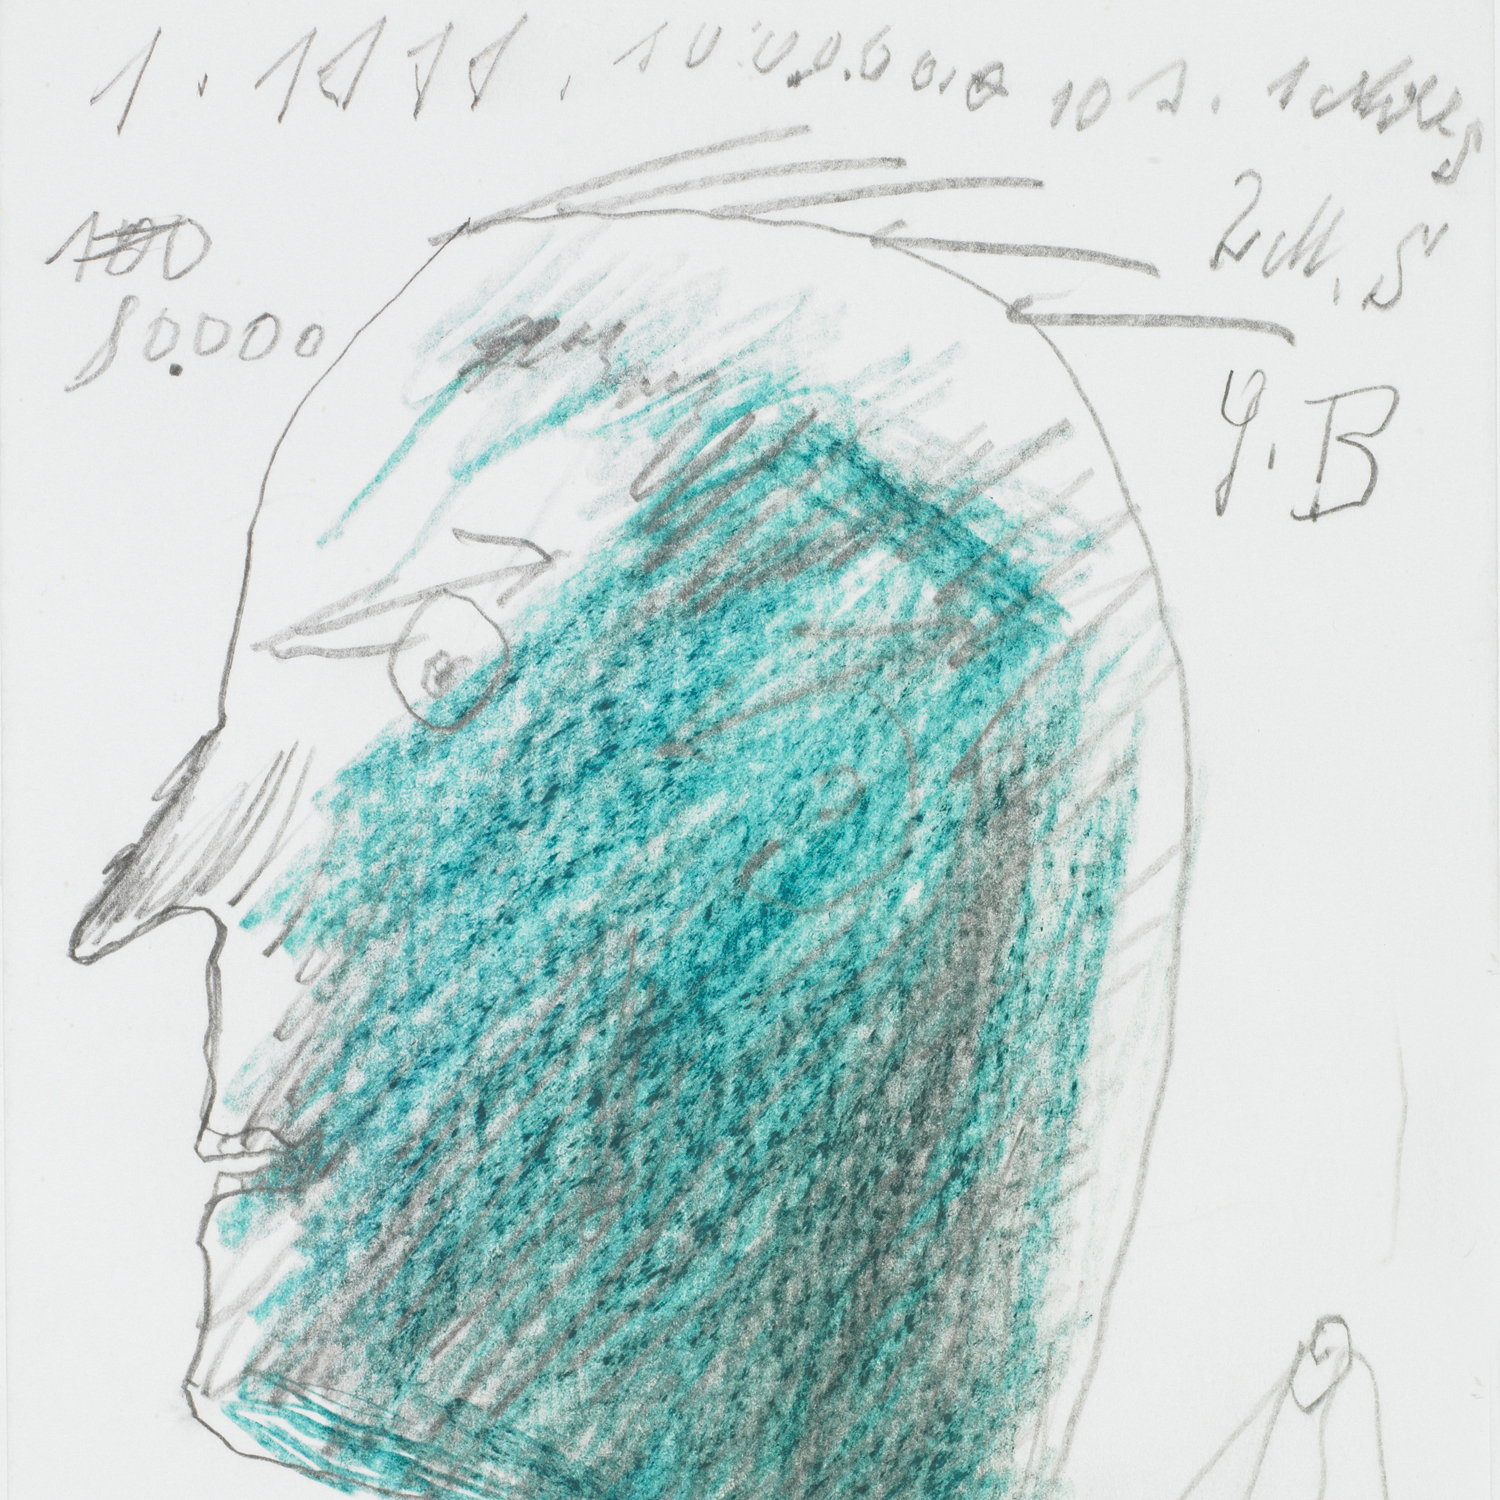 Josef Blahaut, Head, 1979 © private foundation - artists from gugging